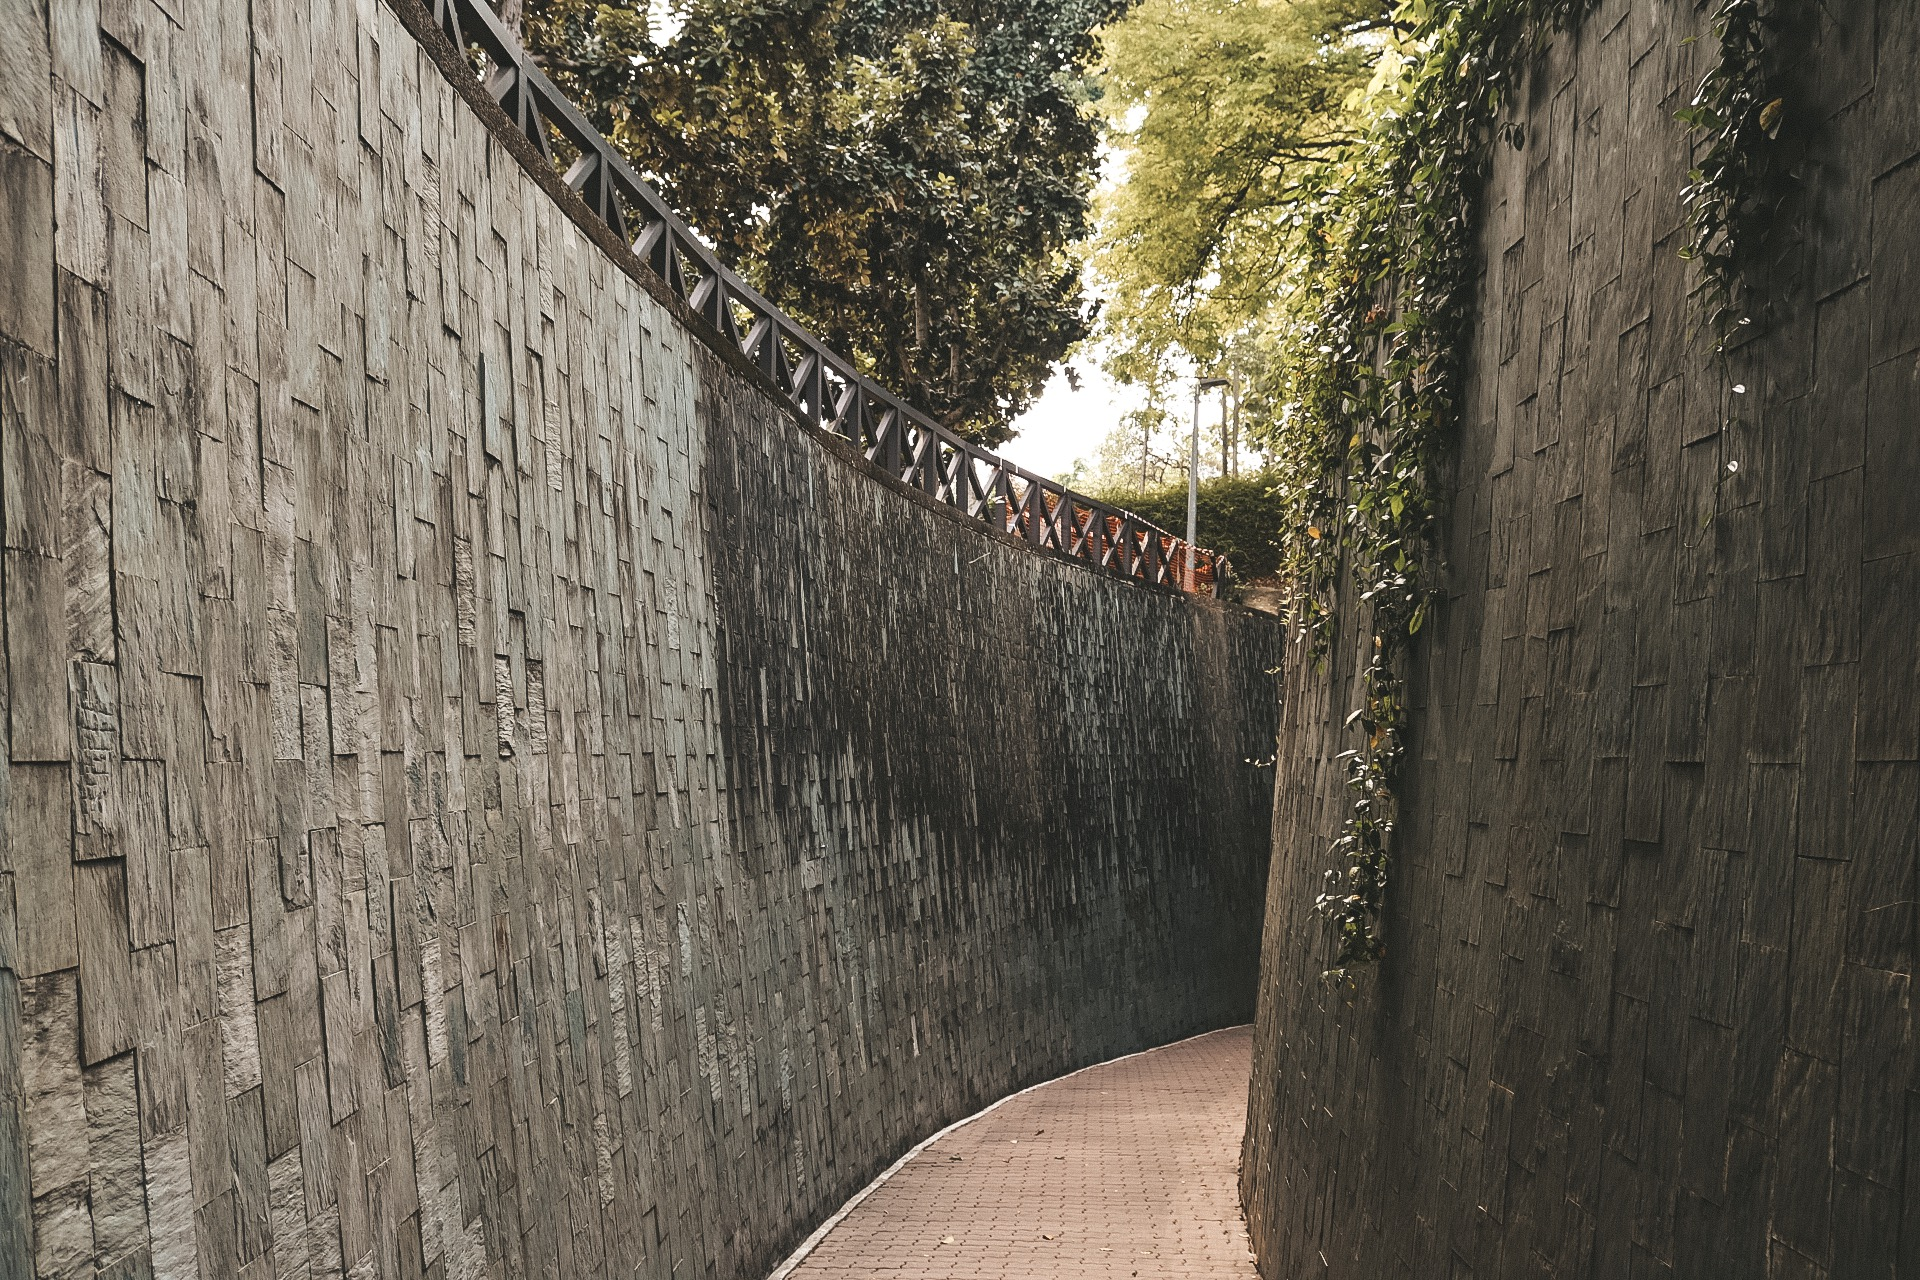 Fort canning park singapore instagram spiral staircase tunnel